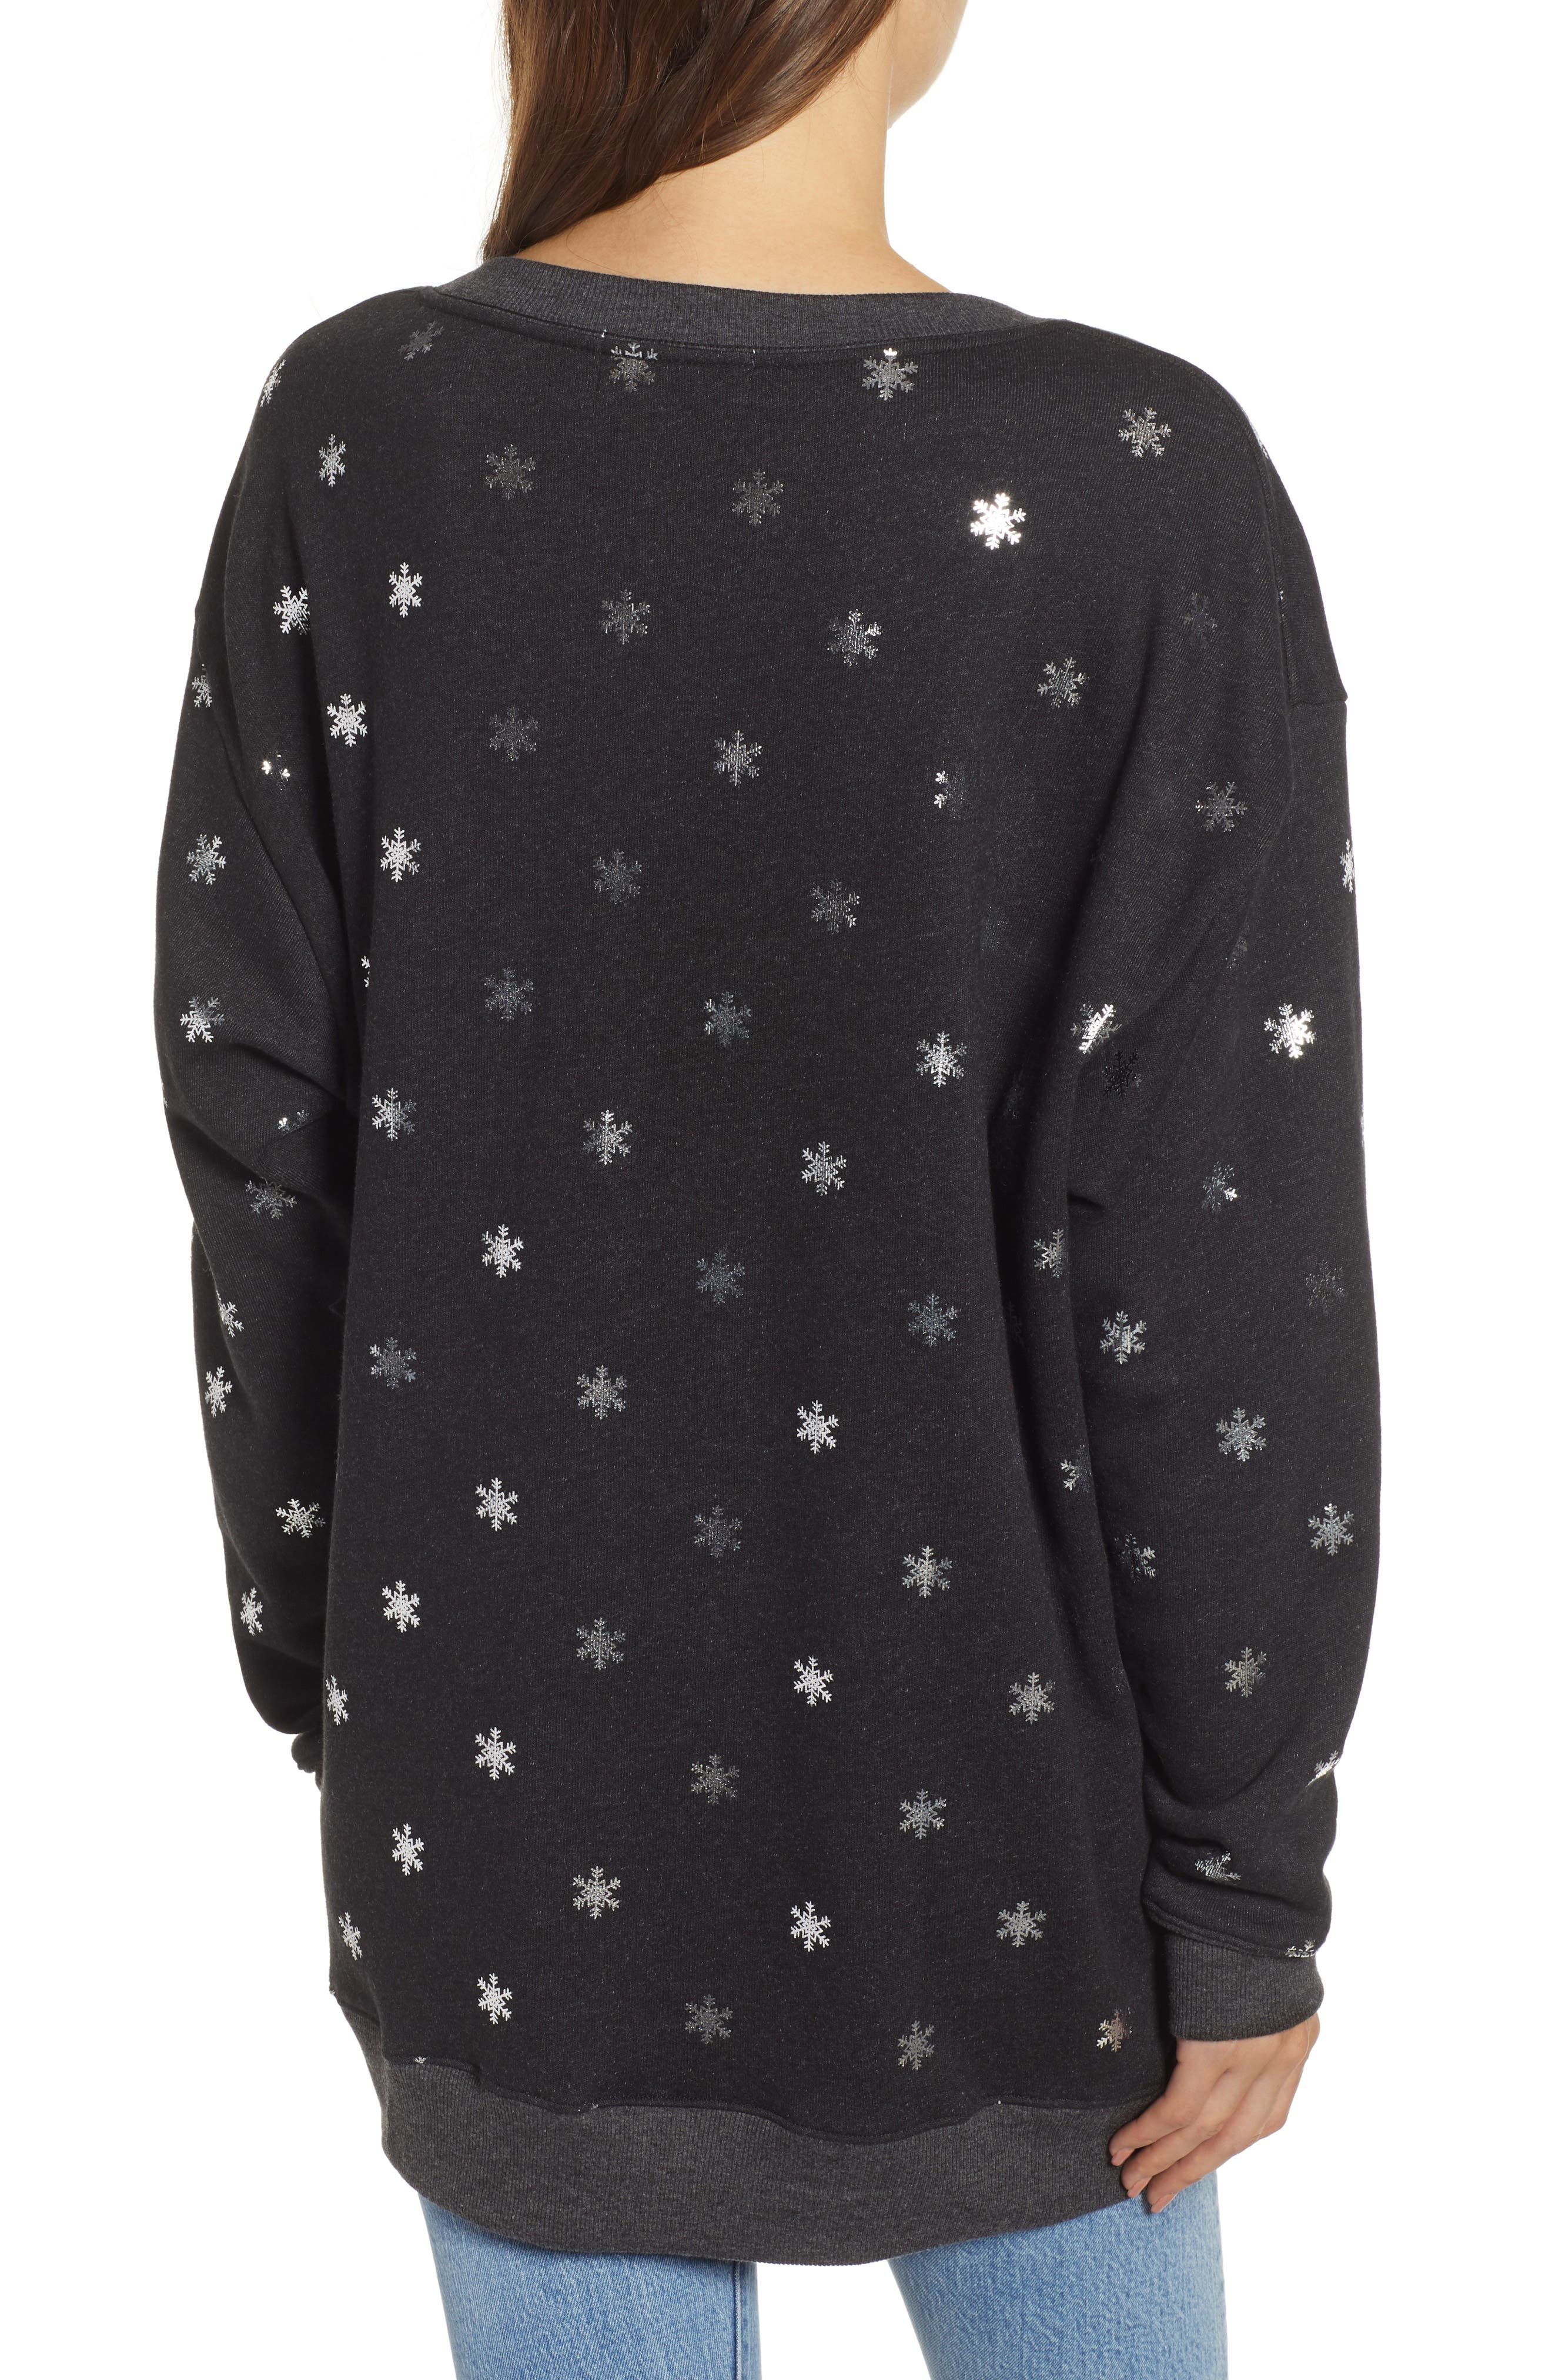 WILDFOX,                             Shimmery Snowflakes Road Trip Pullover,                             Alternate thumbnail 2, color,                             002